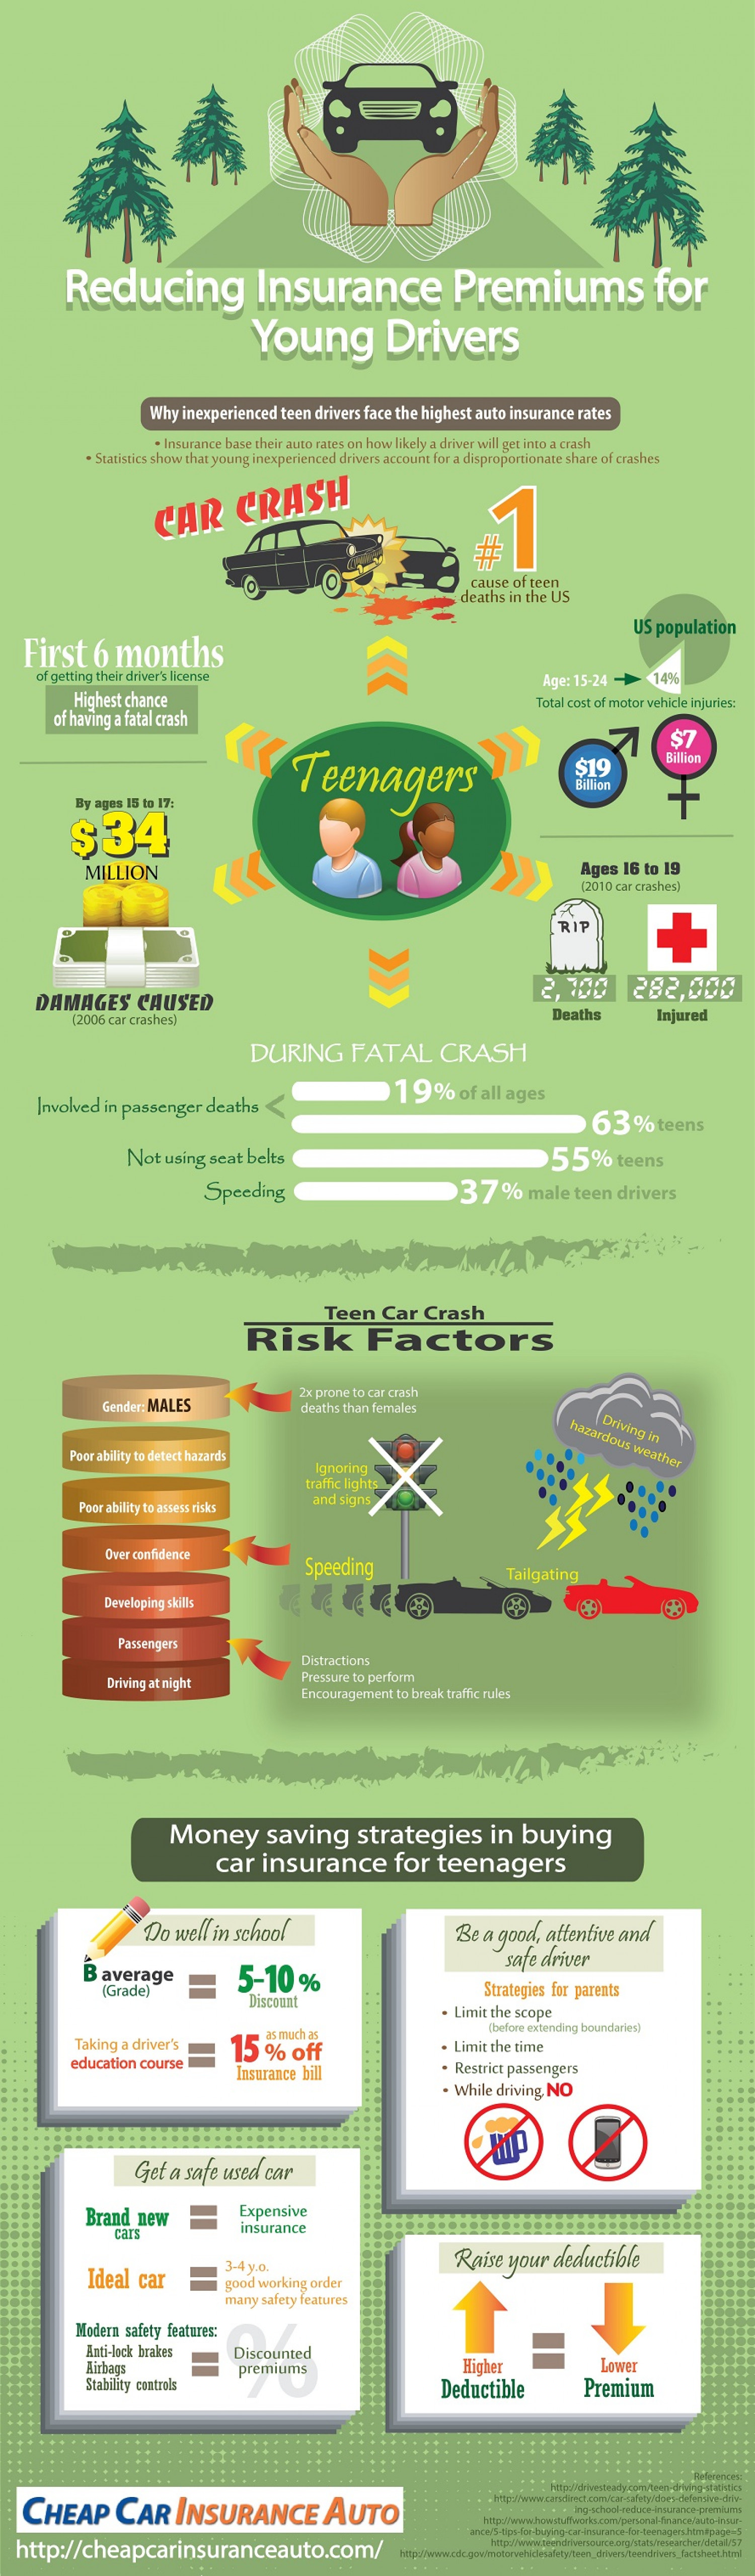 How to reduce the Car Insurance Premium for Young drivers Infographic